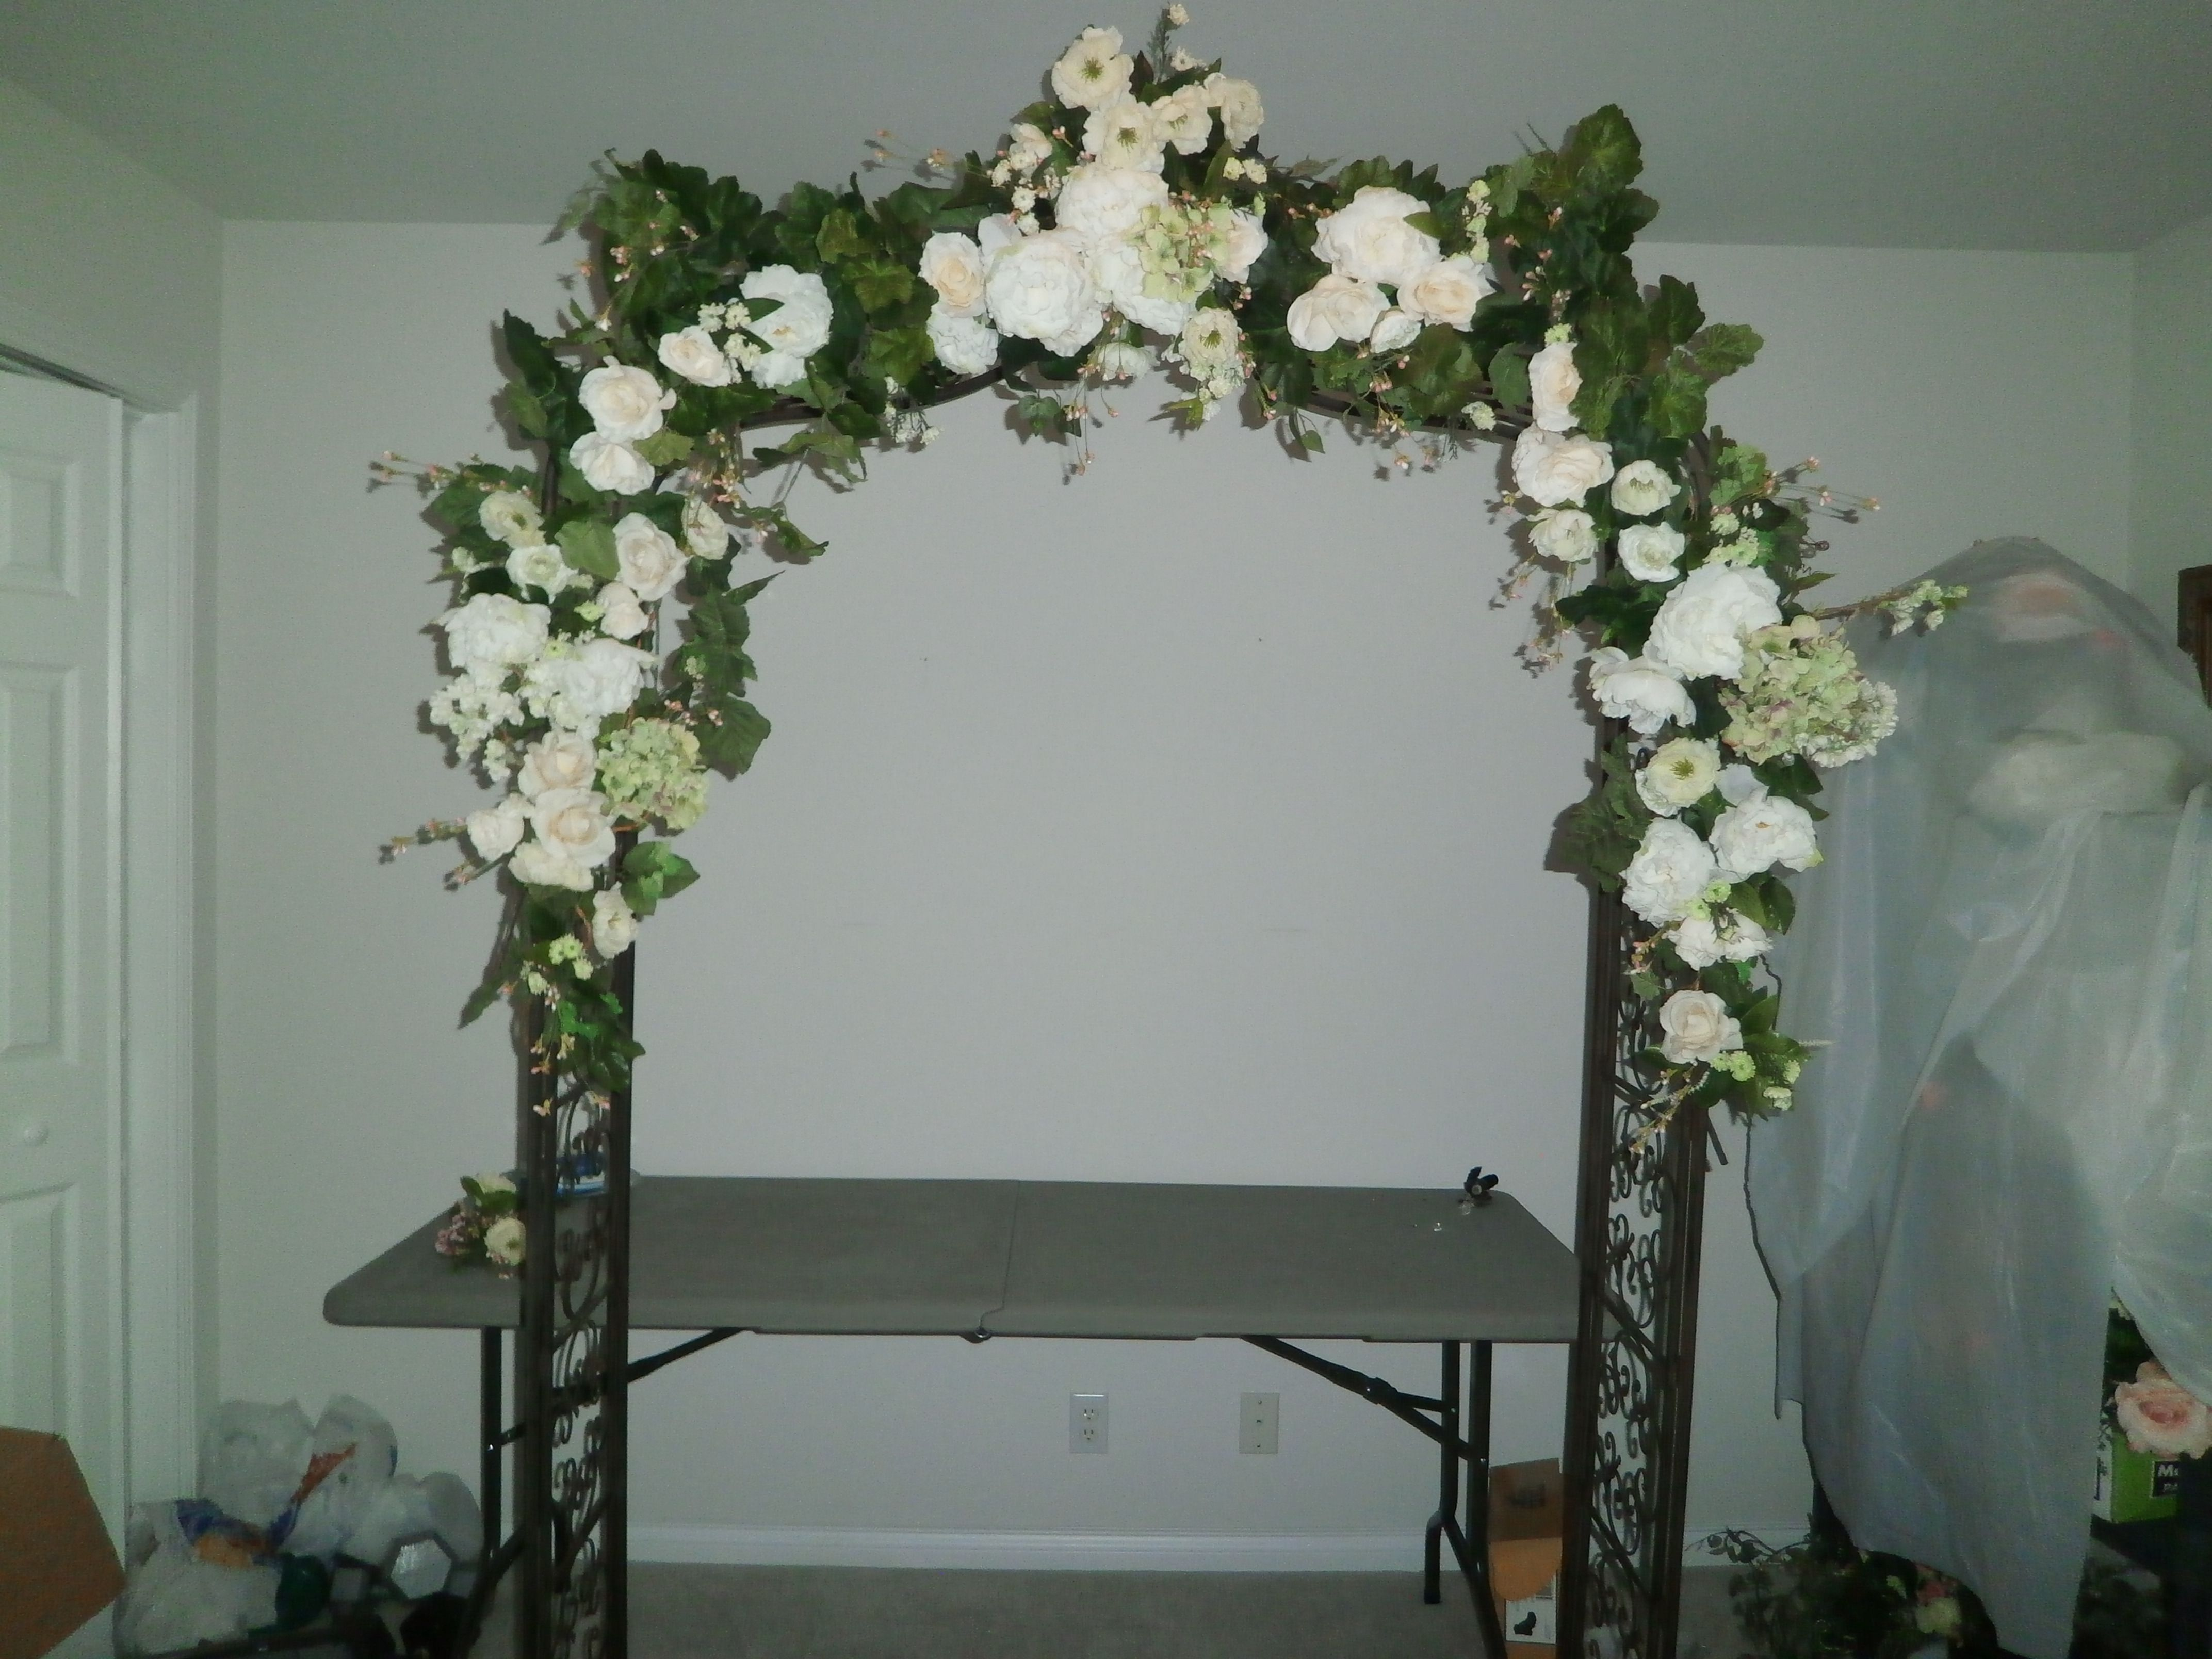 Wedding Arches Hobby Lobby Garden Arch With Multi White Cream Flowers Bought 50 Off